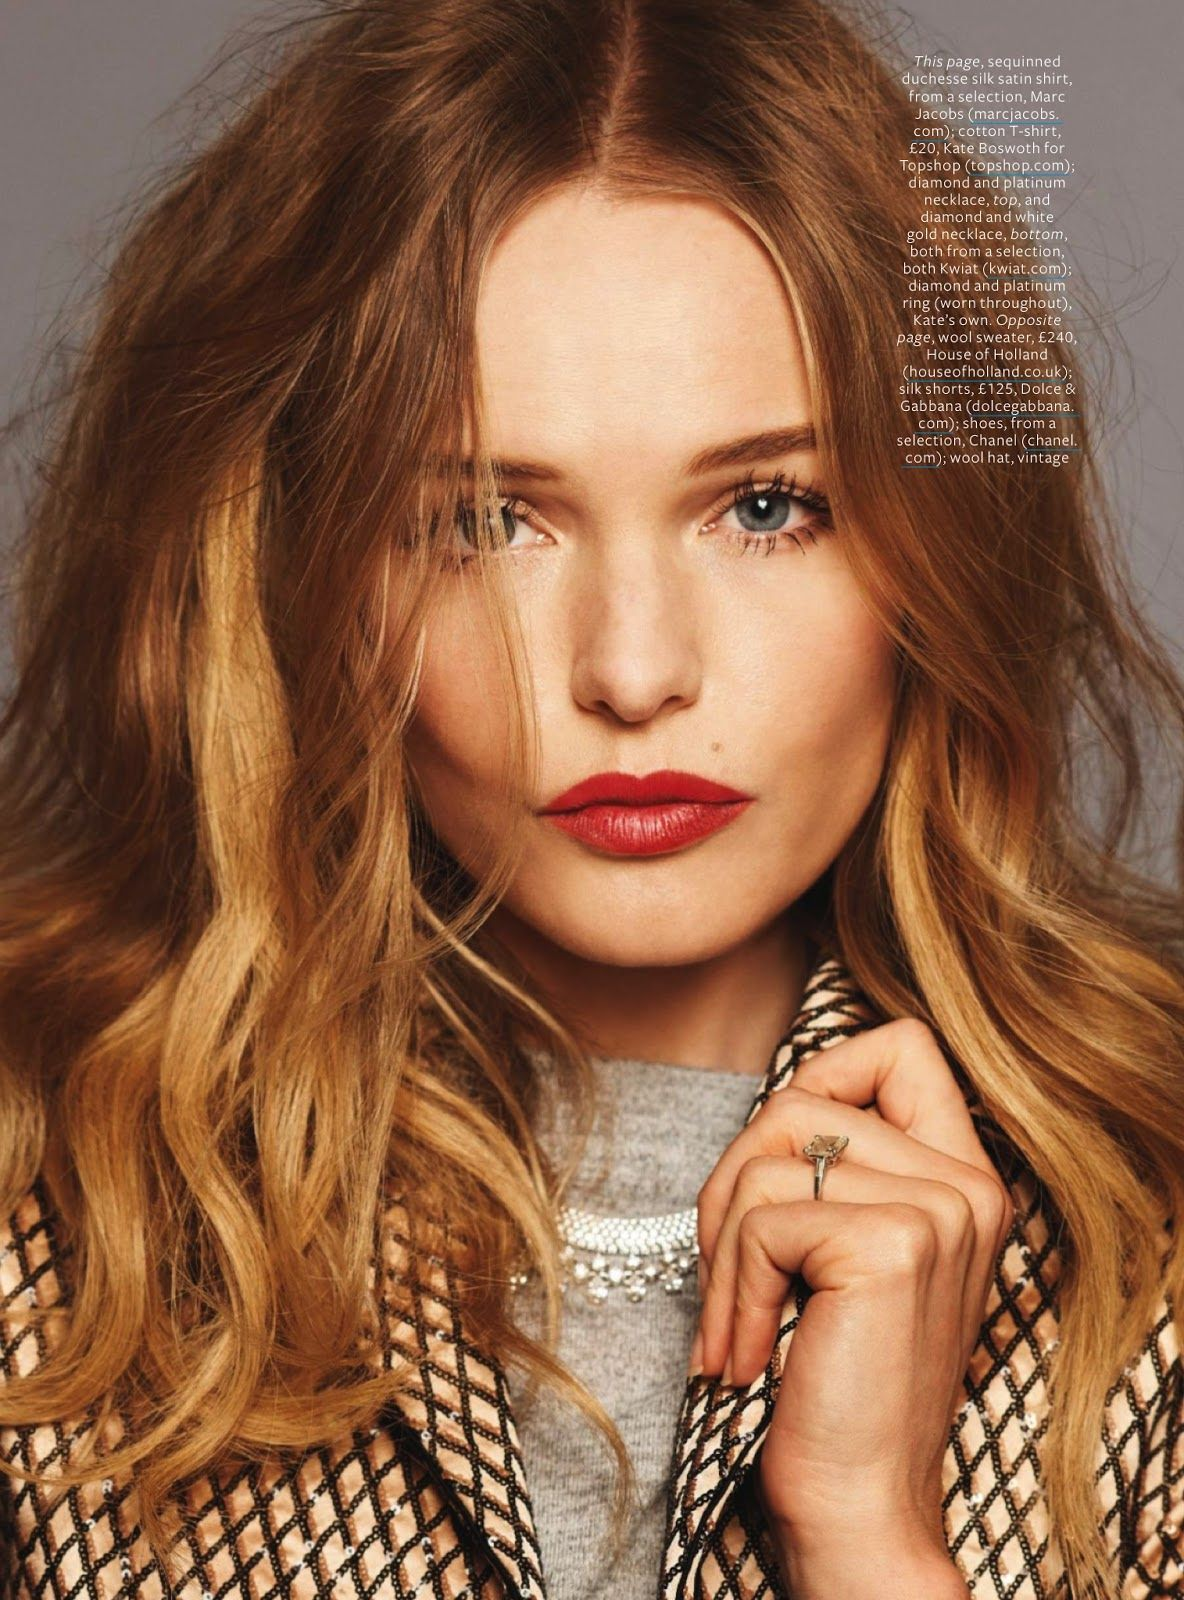 Kate bosworth instyle uk september i like the colors in her